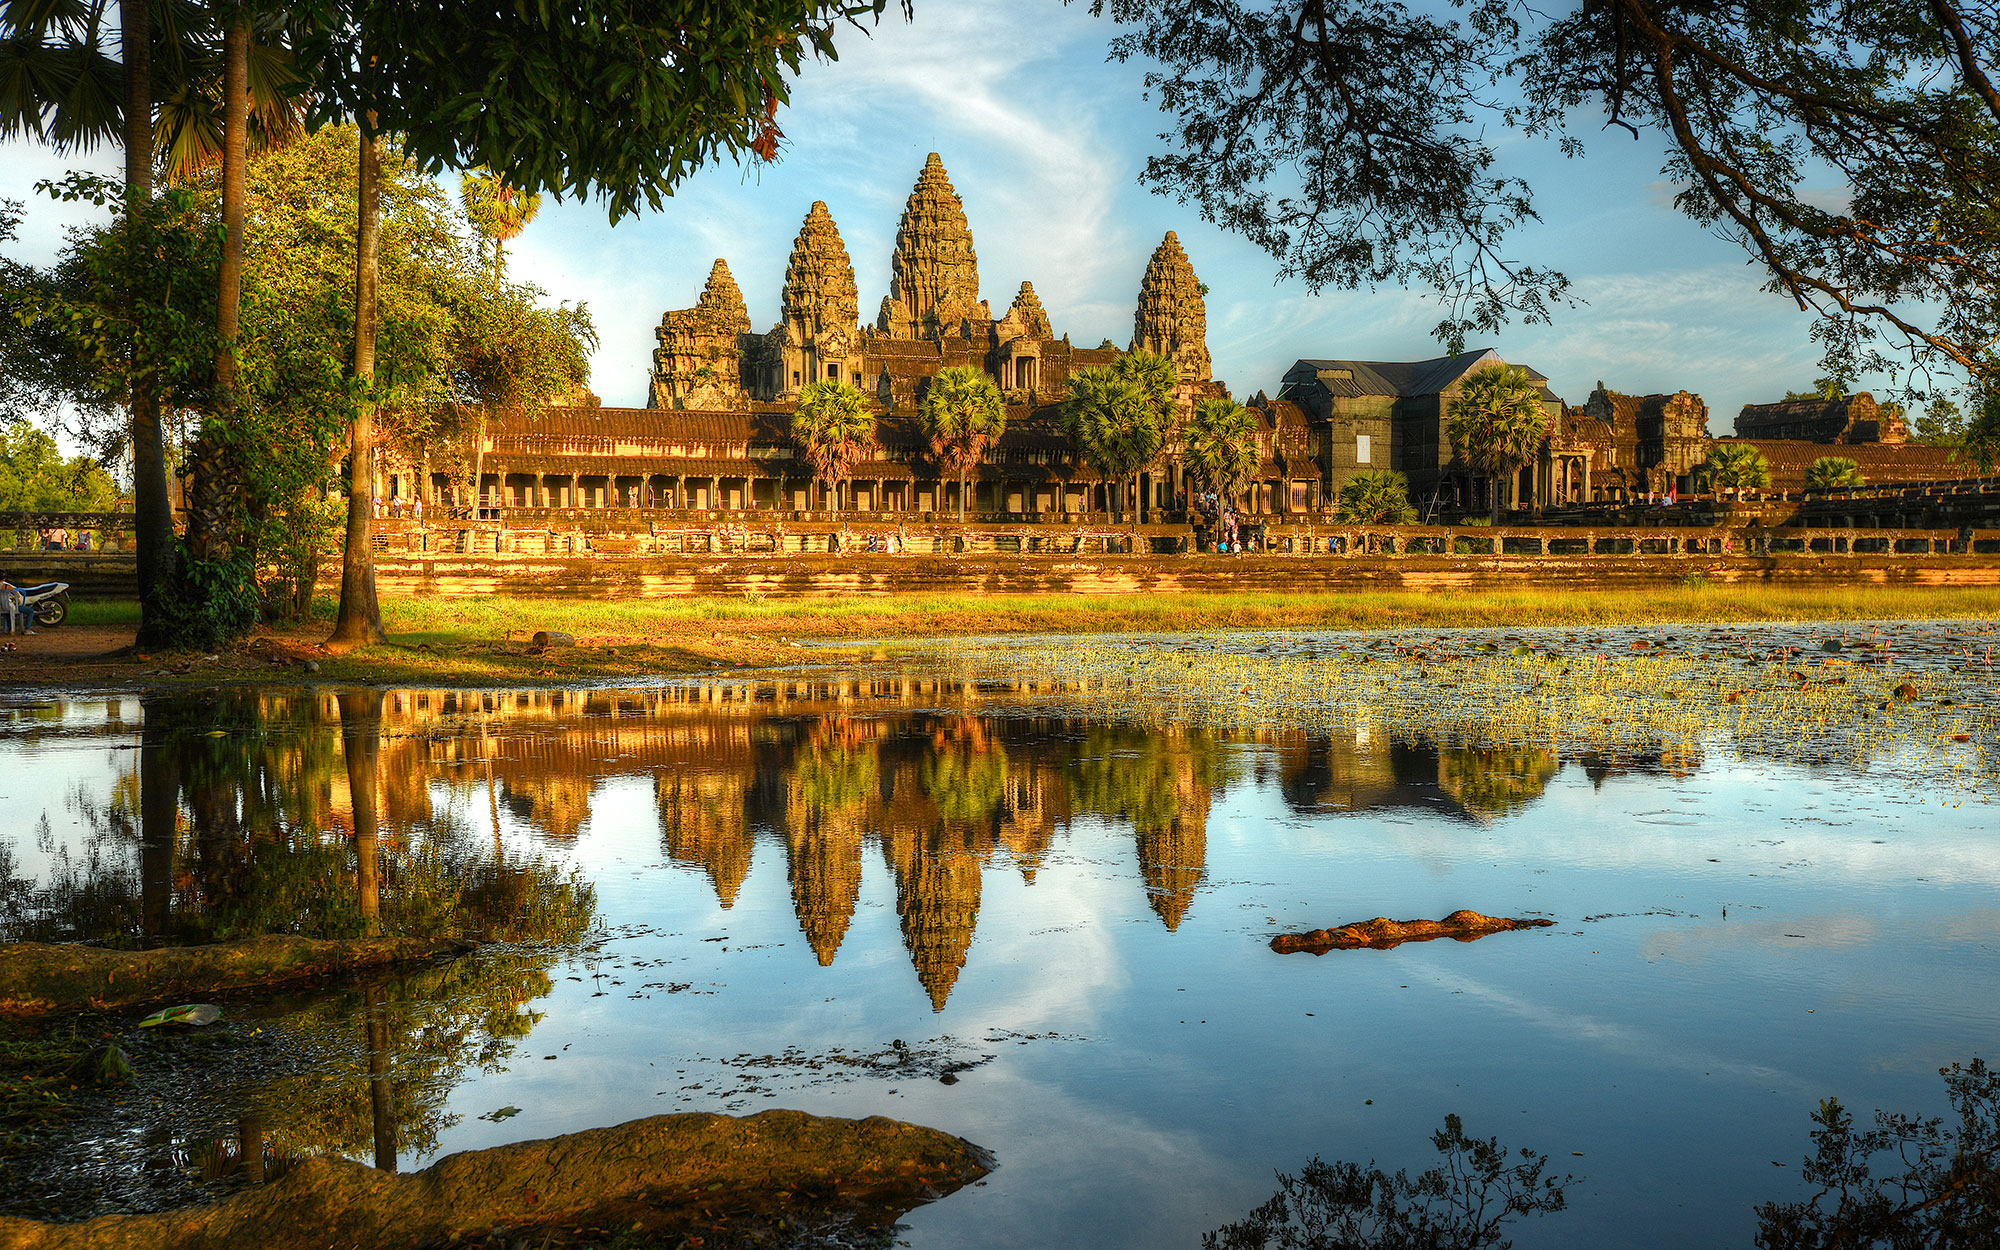 Archaeologists Discover Medieval Cities Hidden in Cambodia's Jungle